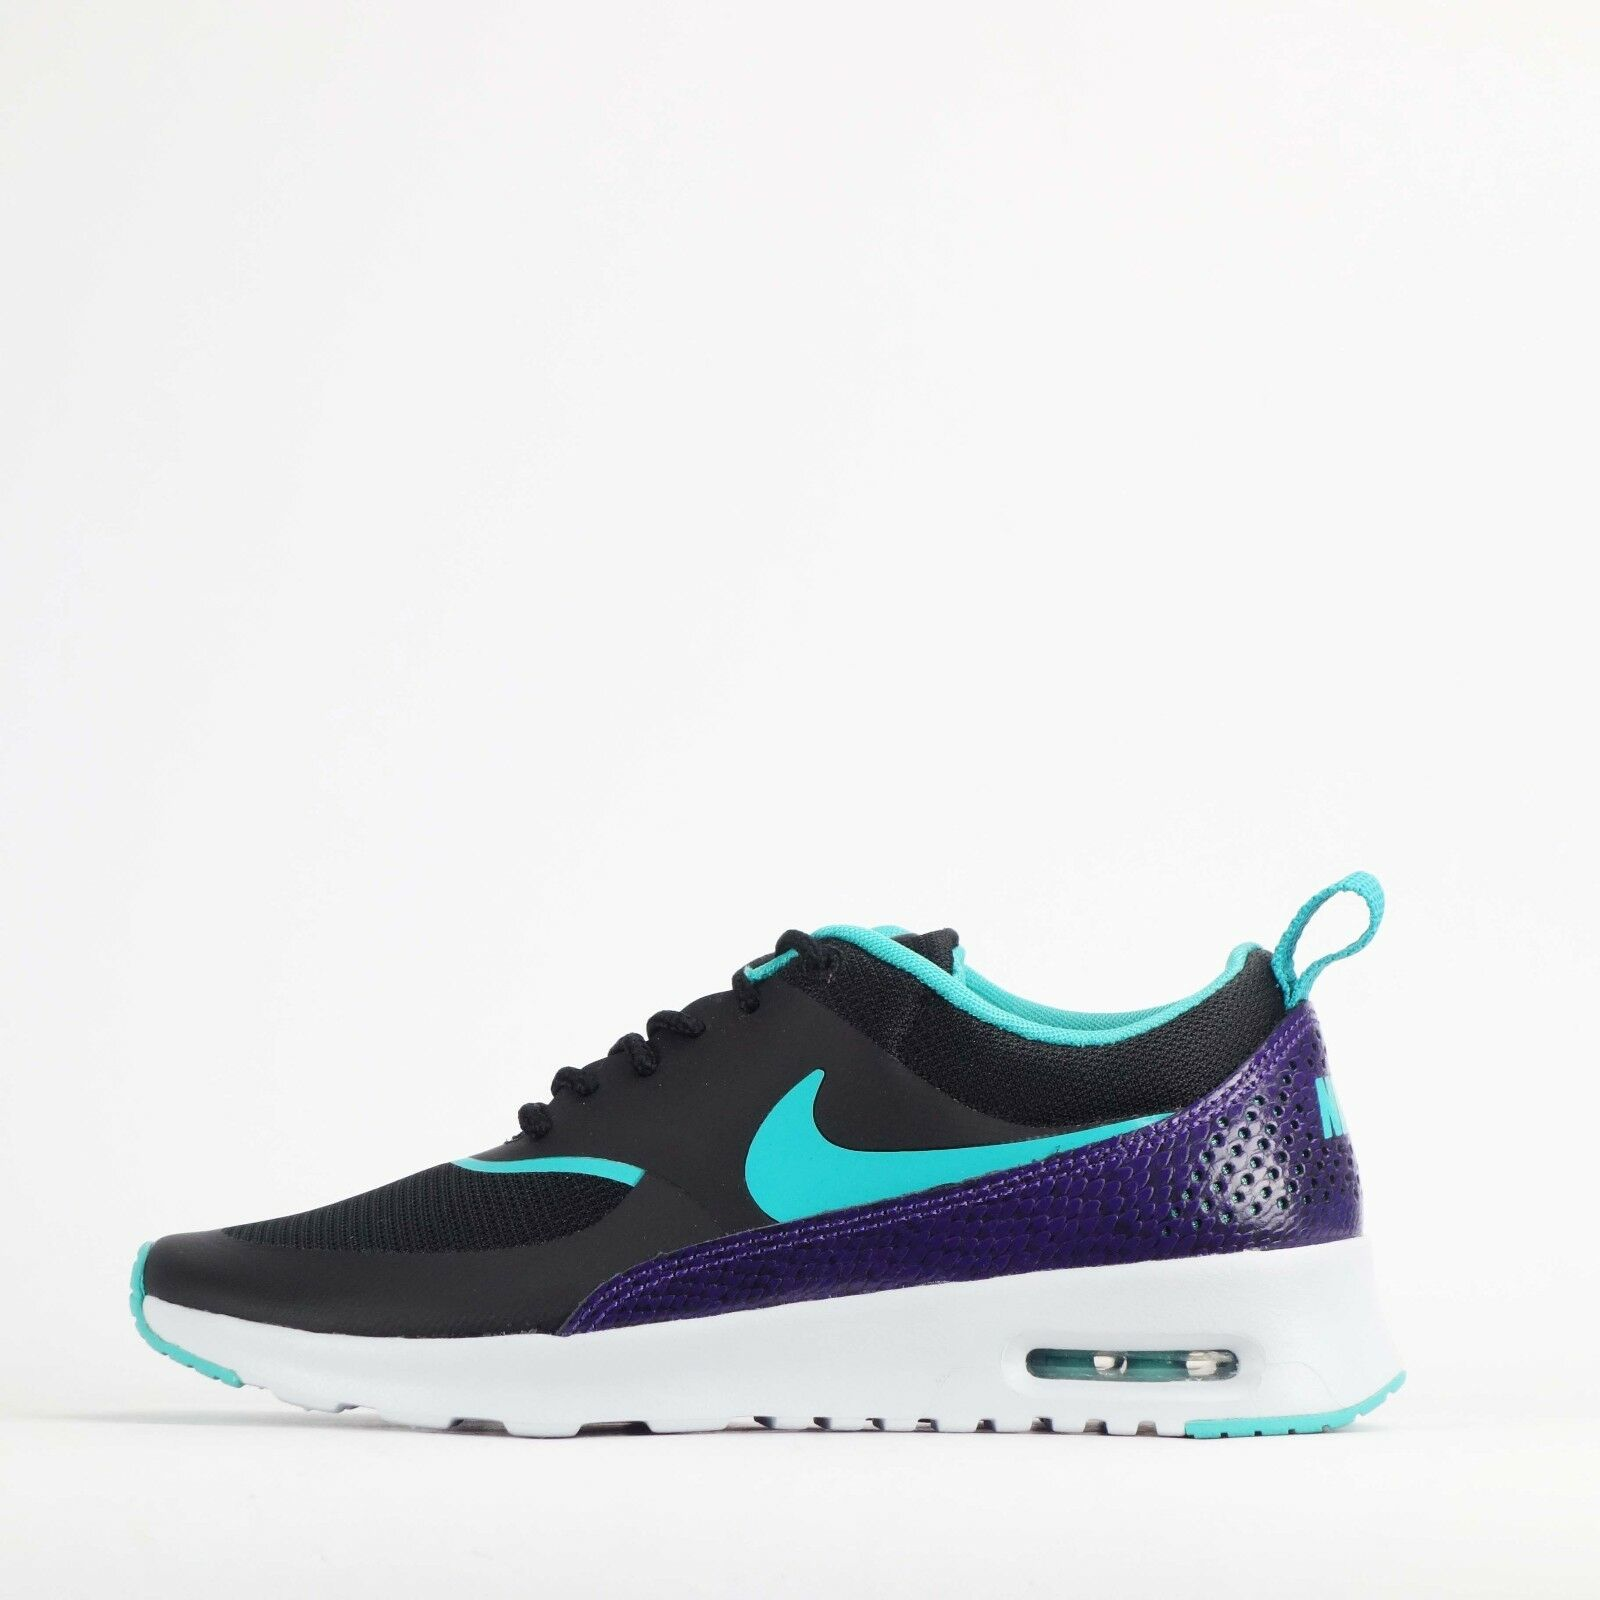 Nike Air Max Thea Premium Womens shoes Black Dusty Cactus